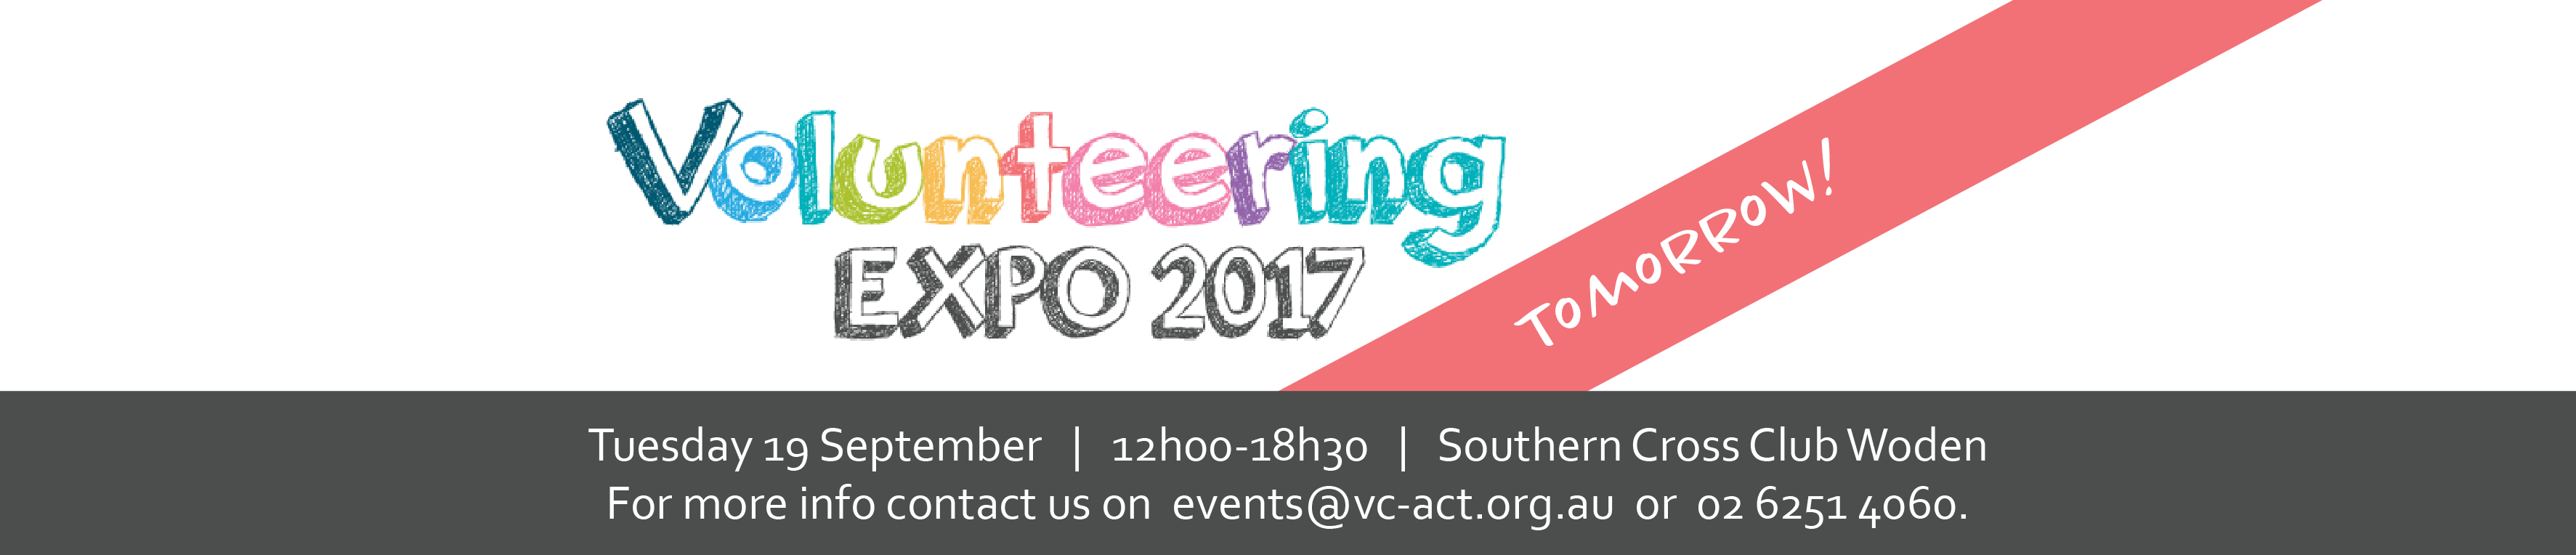 expo act please. Volunteering clipart banner